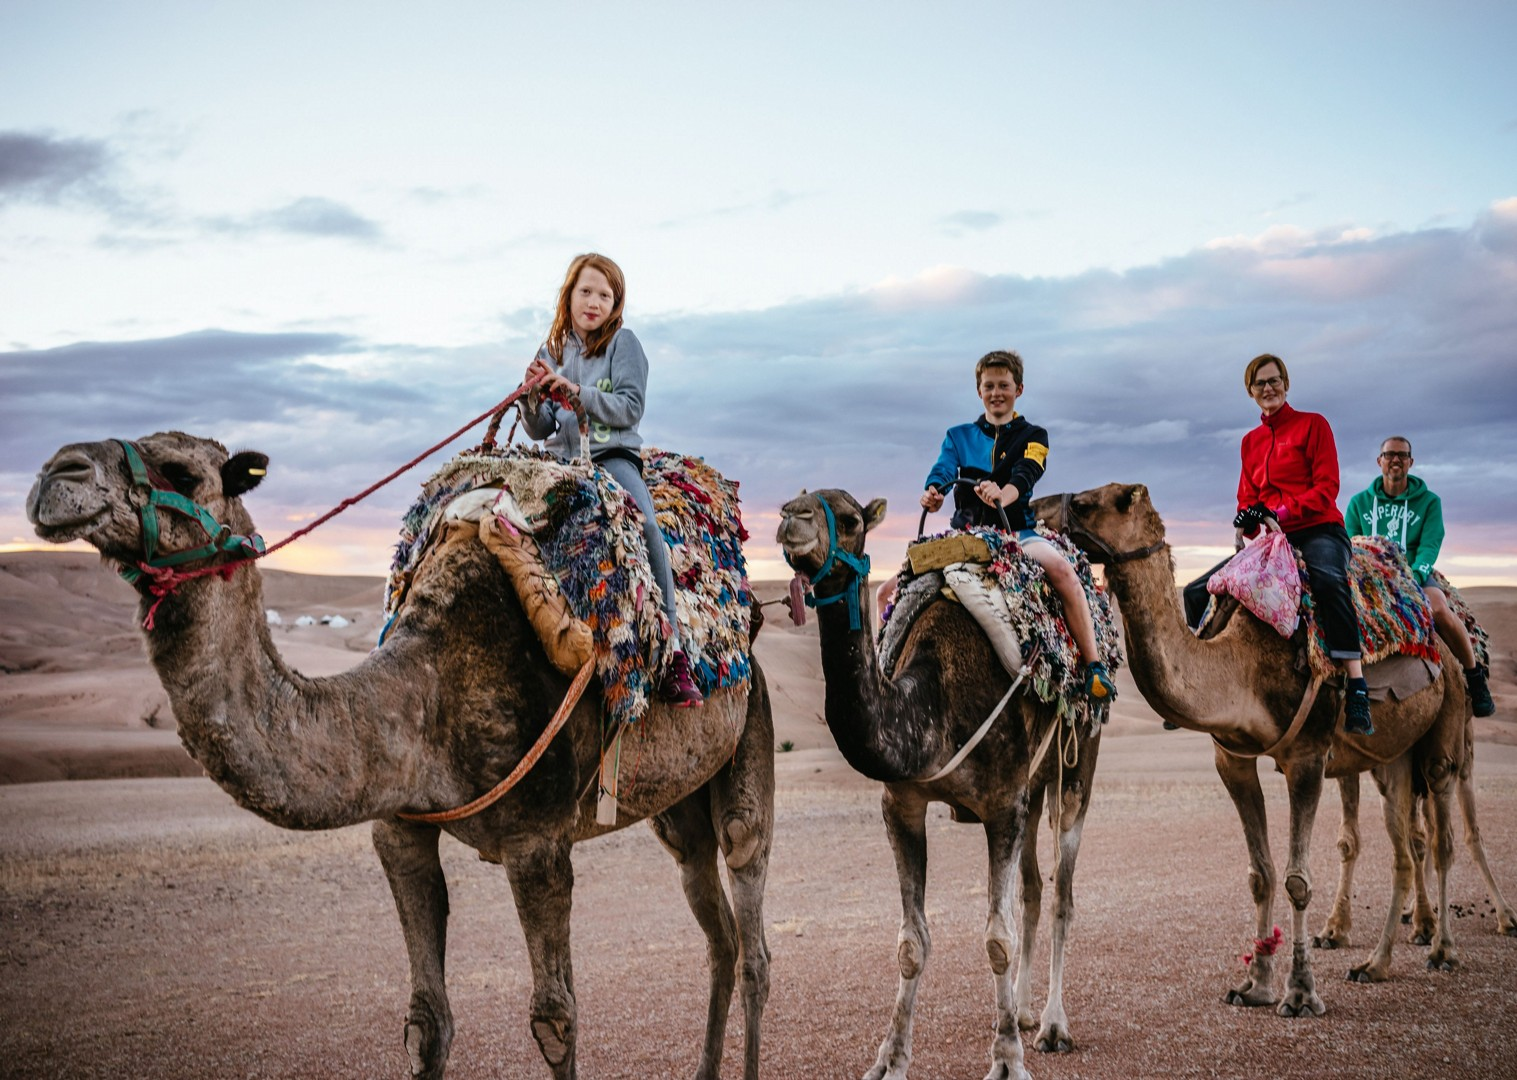 Family-Cycling-Holiday-Morocco-Desert-Mountains-Coast-Camels-ride-a-camel - Morocco - Desert, Mountains and Coast - Family Cycling